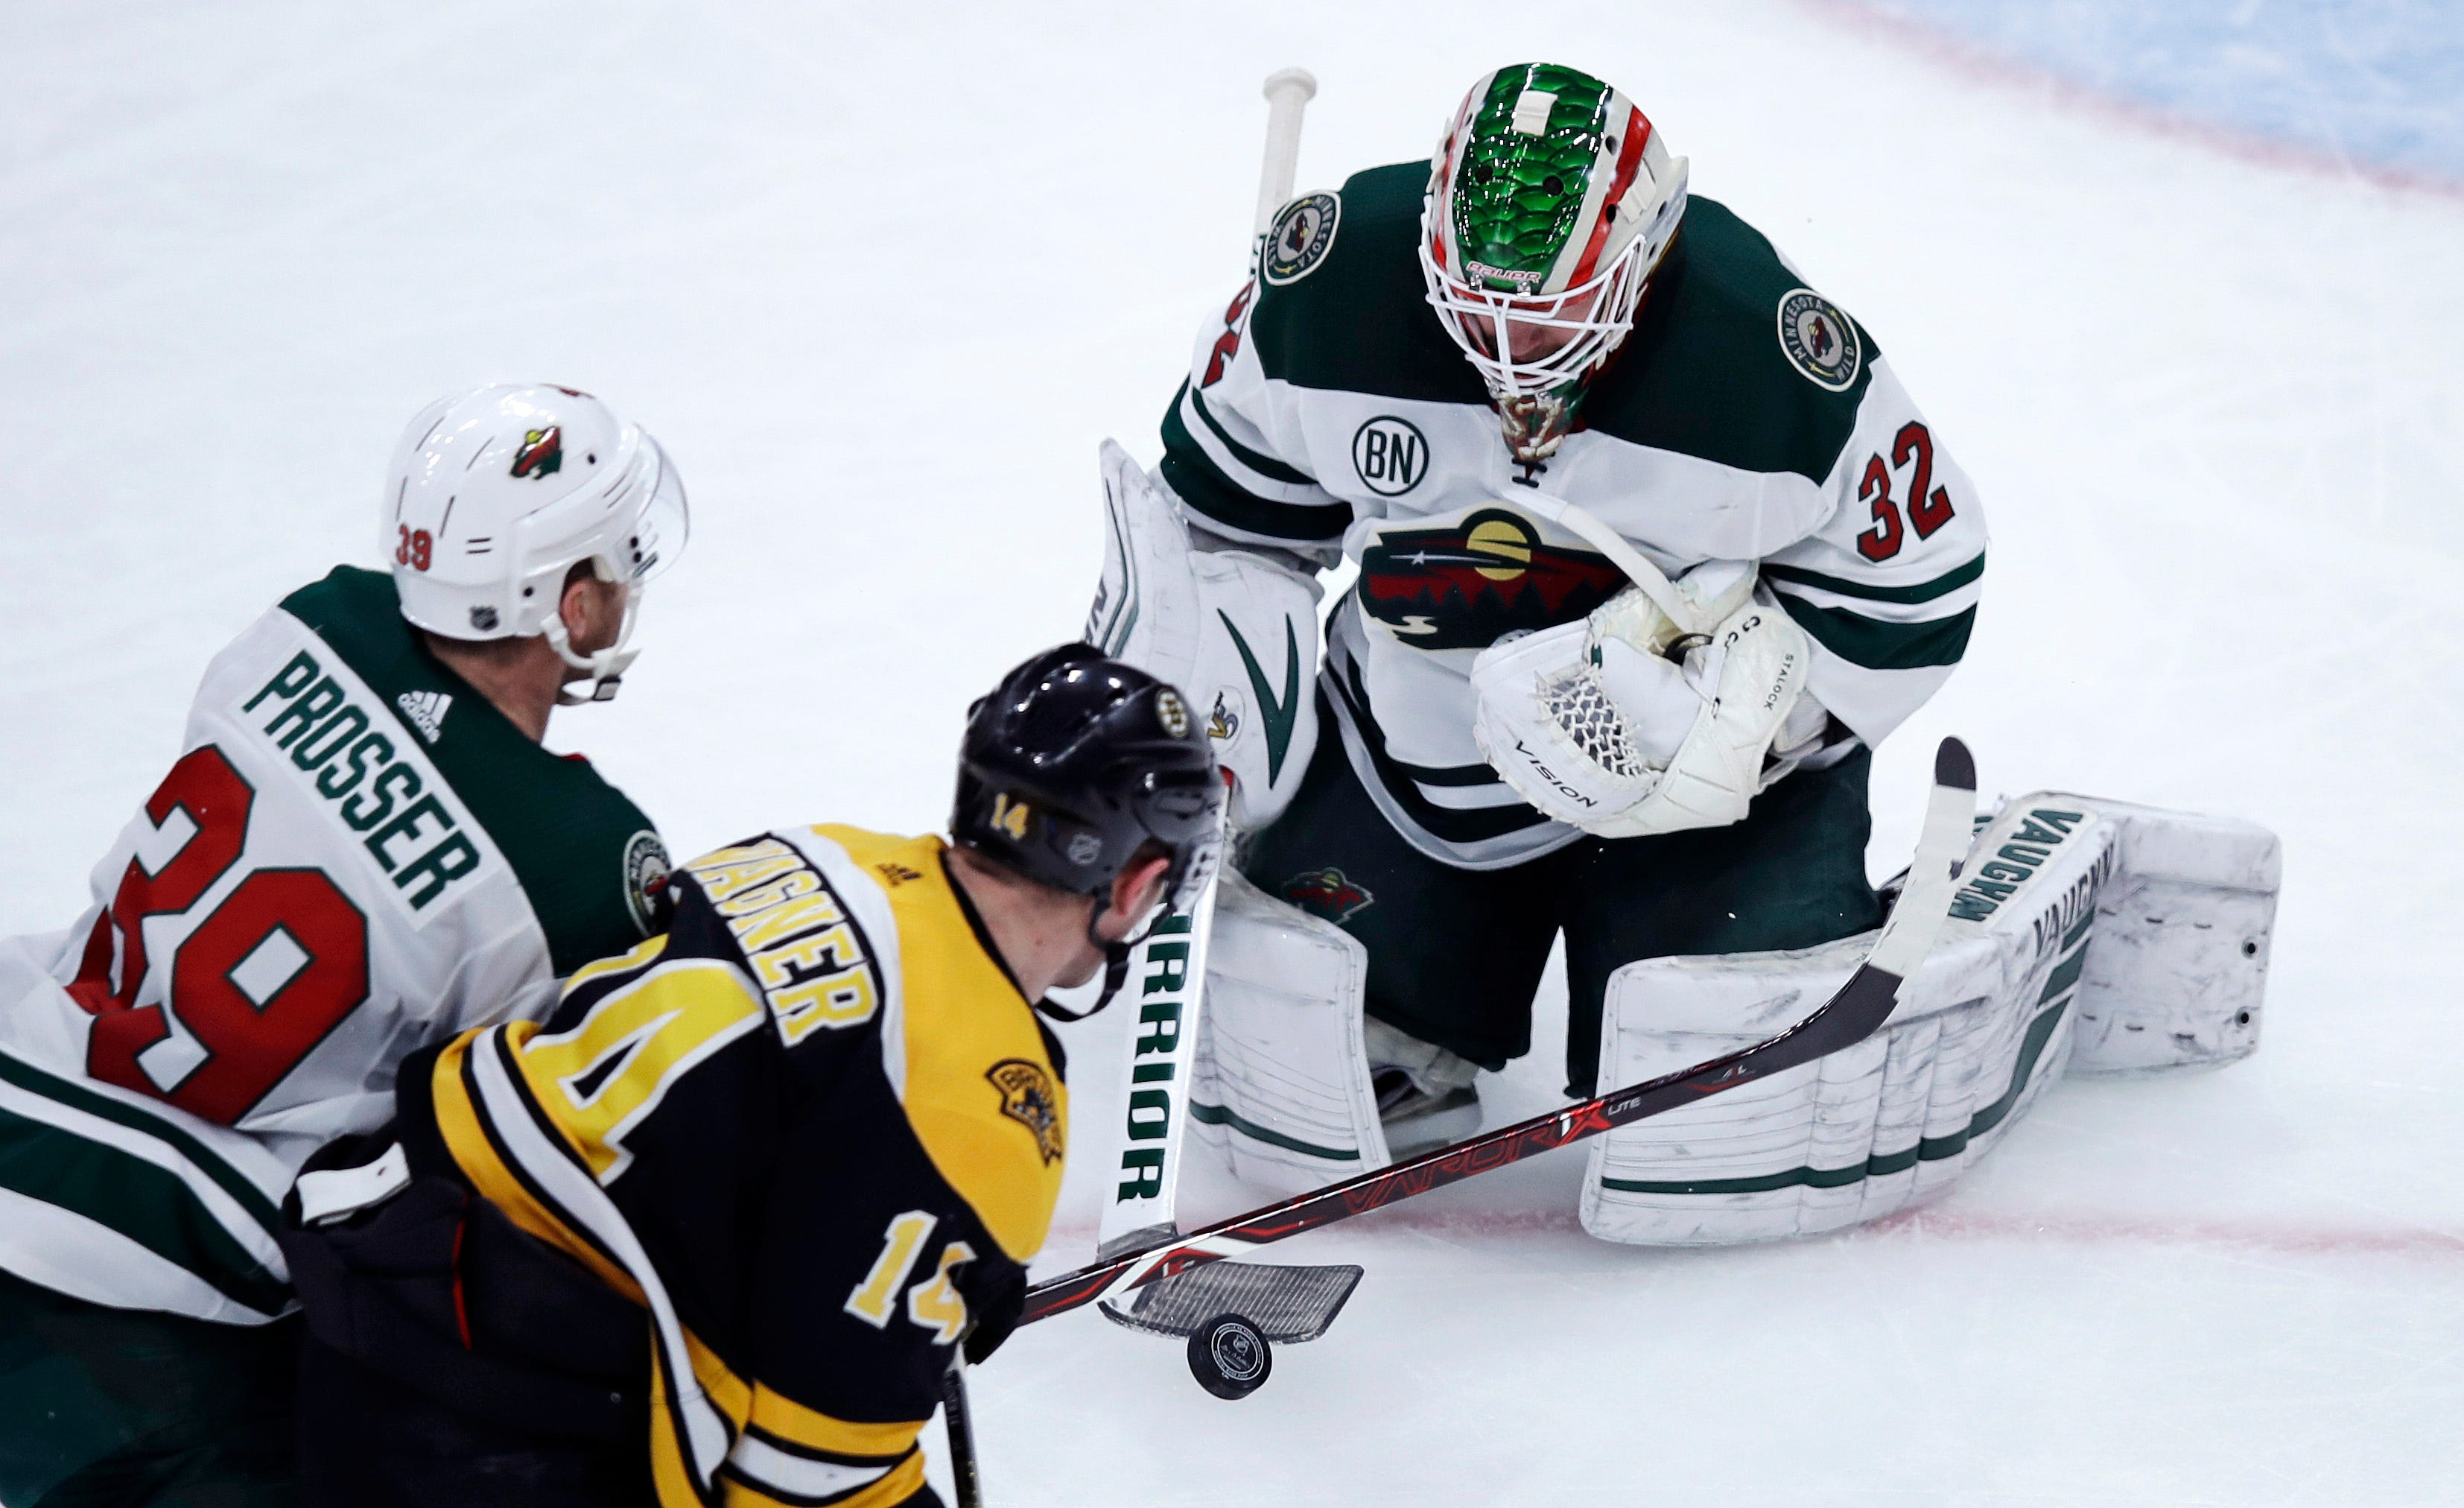 Rask stops 24 shots, Bruins shut out Wild 4-0